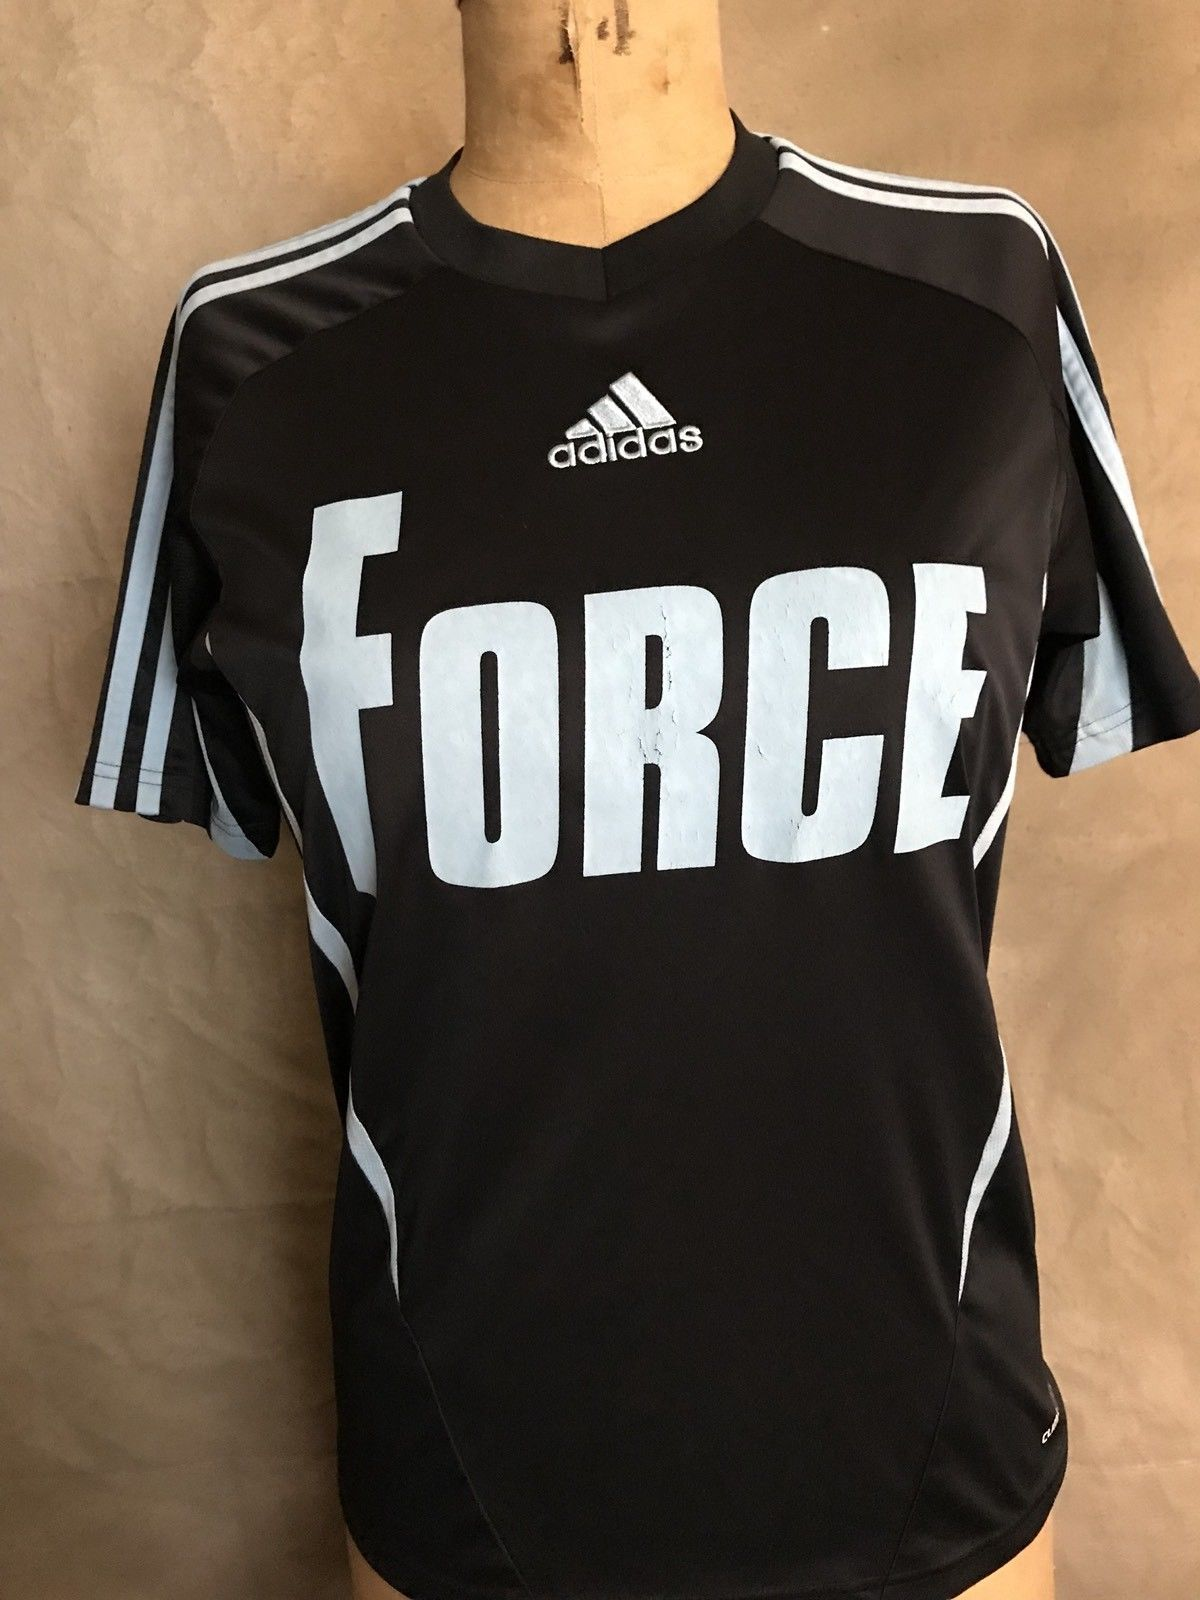 0d18a517217 Adidas Black FORCE Soccer Jersey Top  36 and 50 similar items